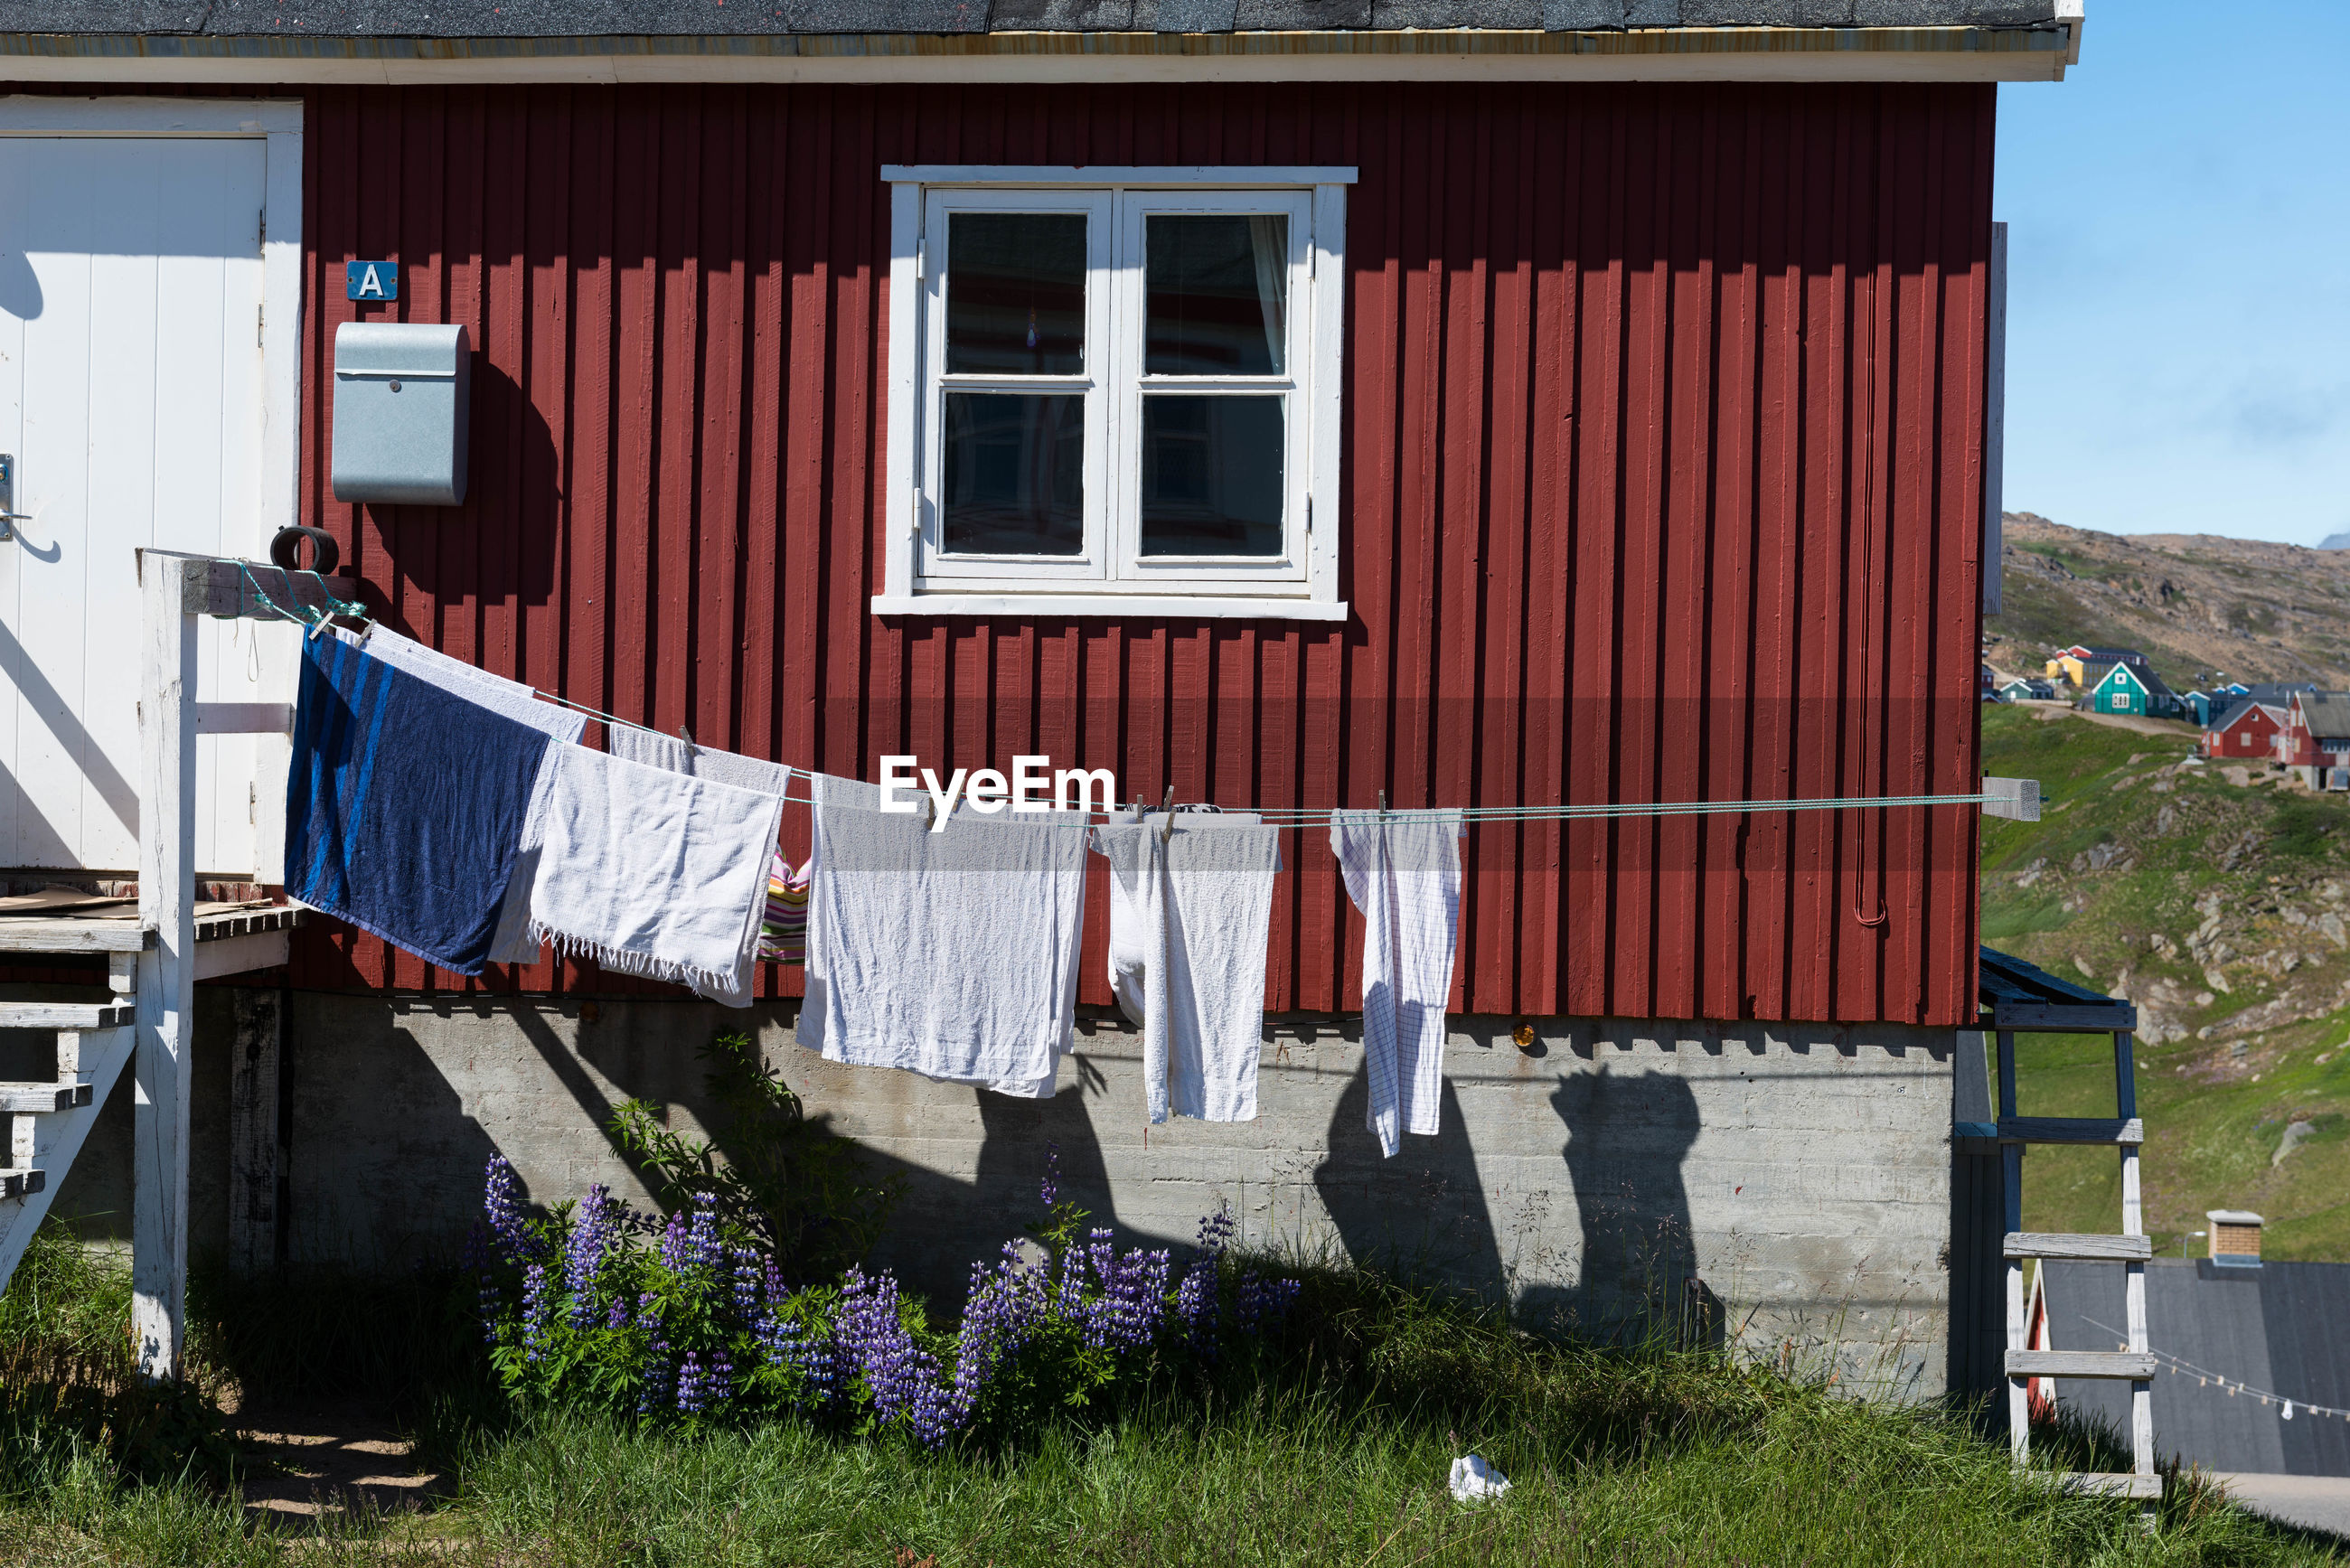 CLOTHES DRYING ON HOUSE AGAINST SKY